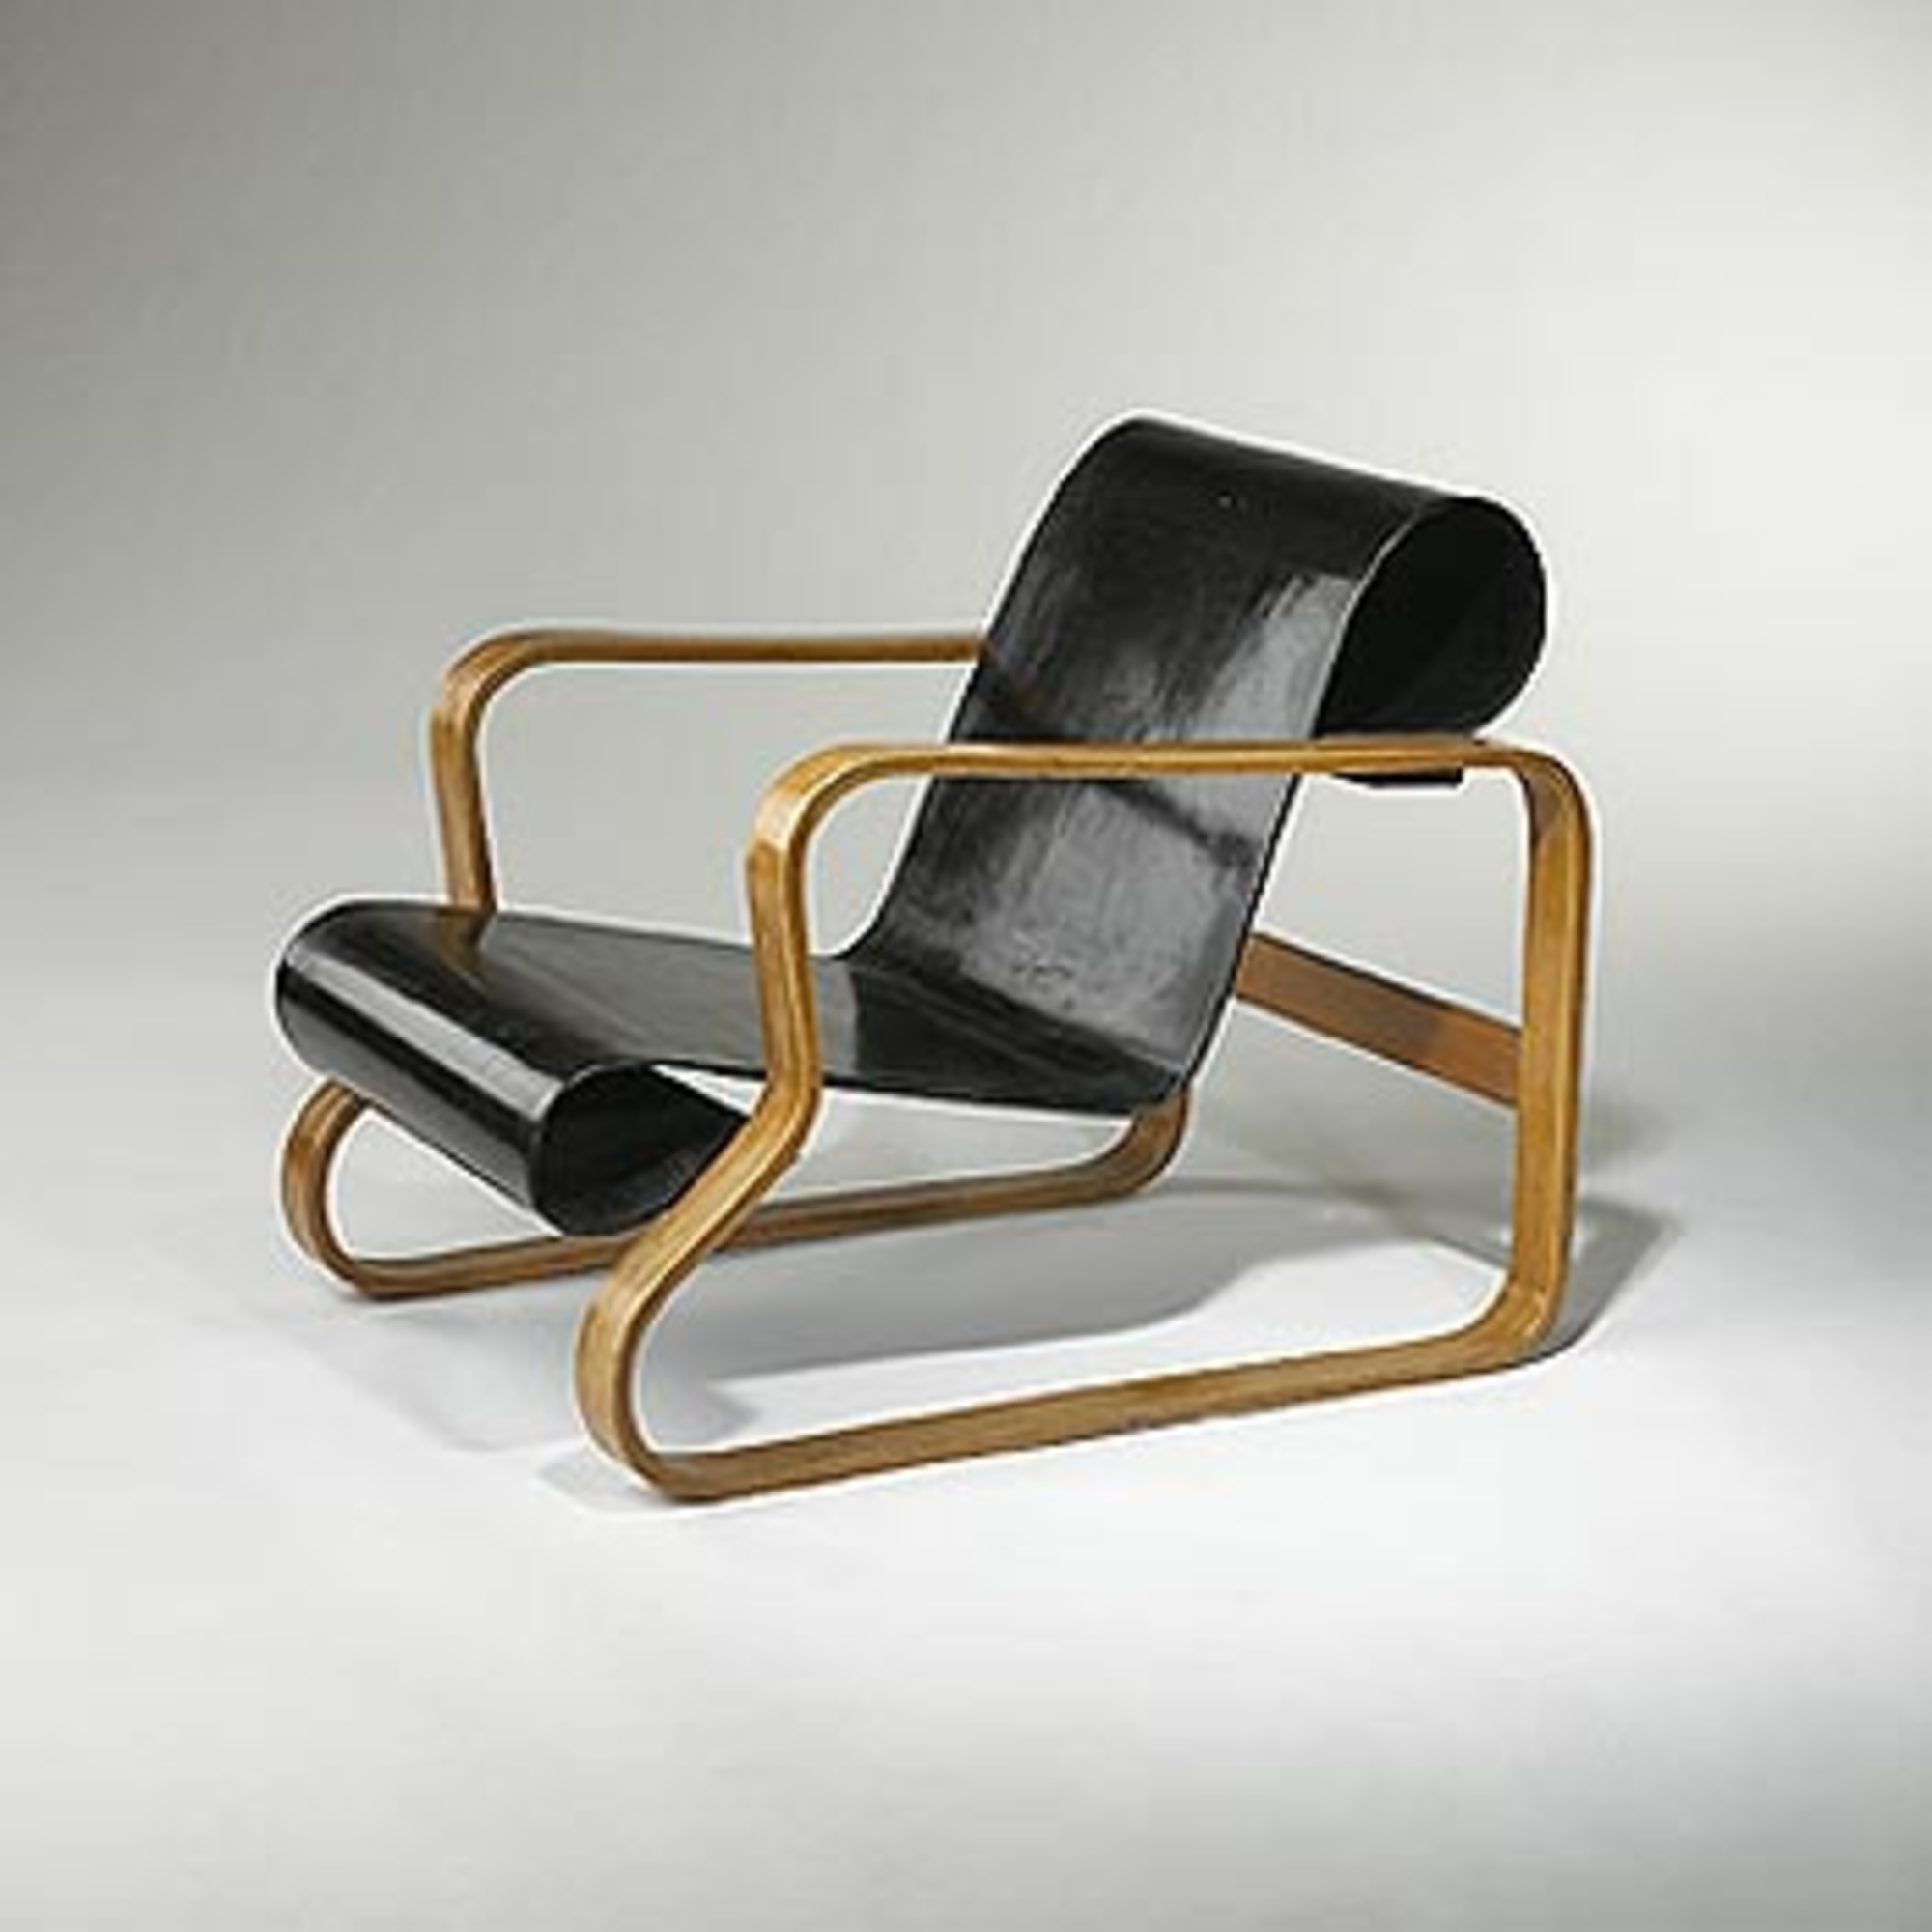 149 ALVAR AALTO an early Paimio lounge chair model 41 u003c Modernist 20th Century 18 May 2003 u003c Auctions | Wright Auctions of Art and Design & 149: ALVAR AALTO an early Paimio lounge chair model 41 u003c Modernist ...